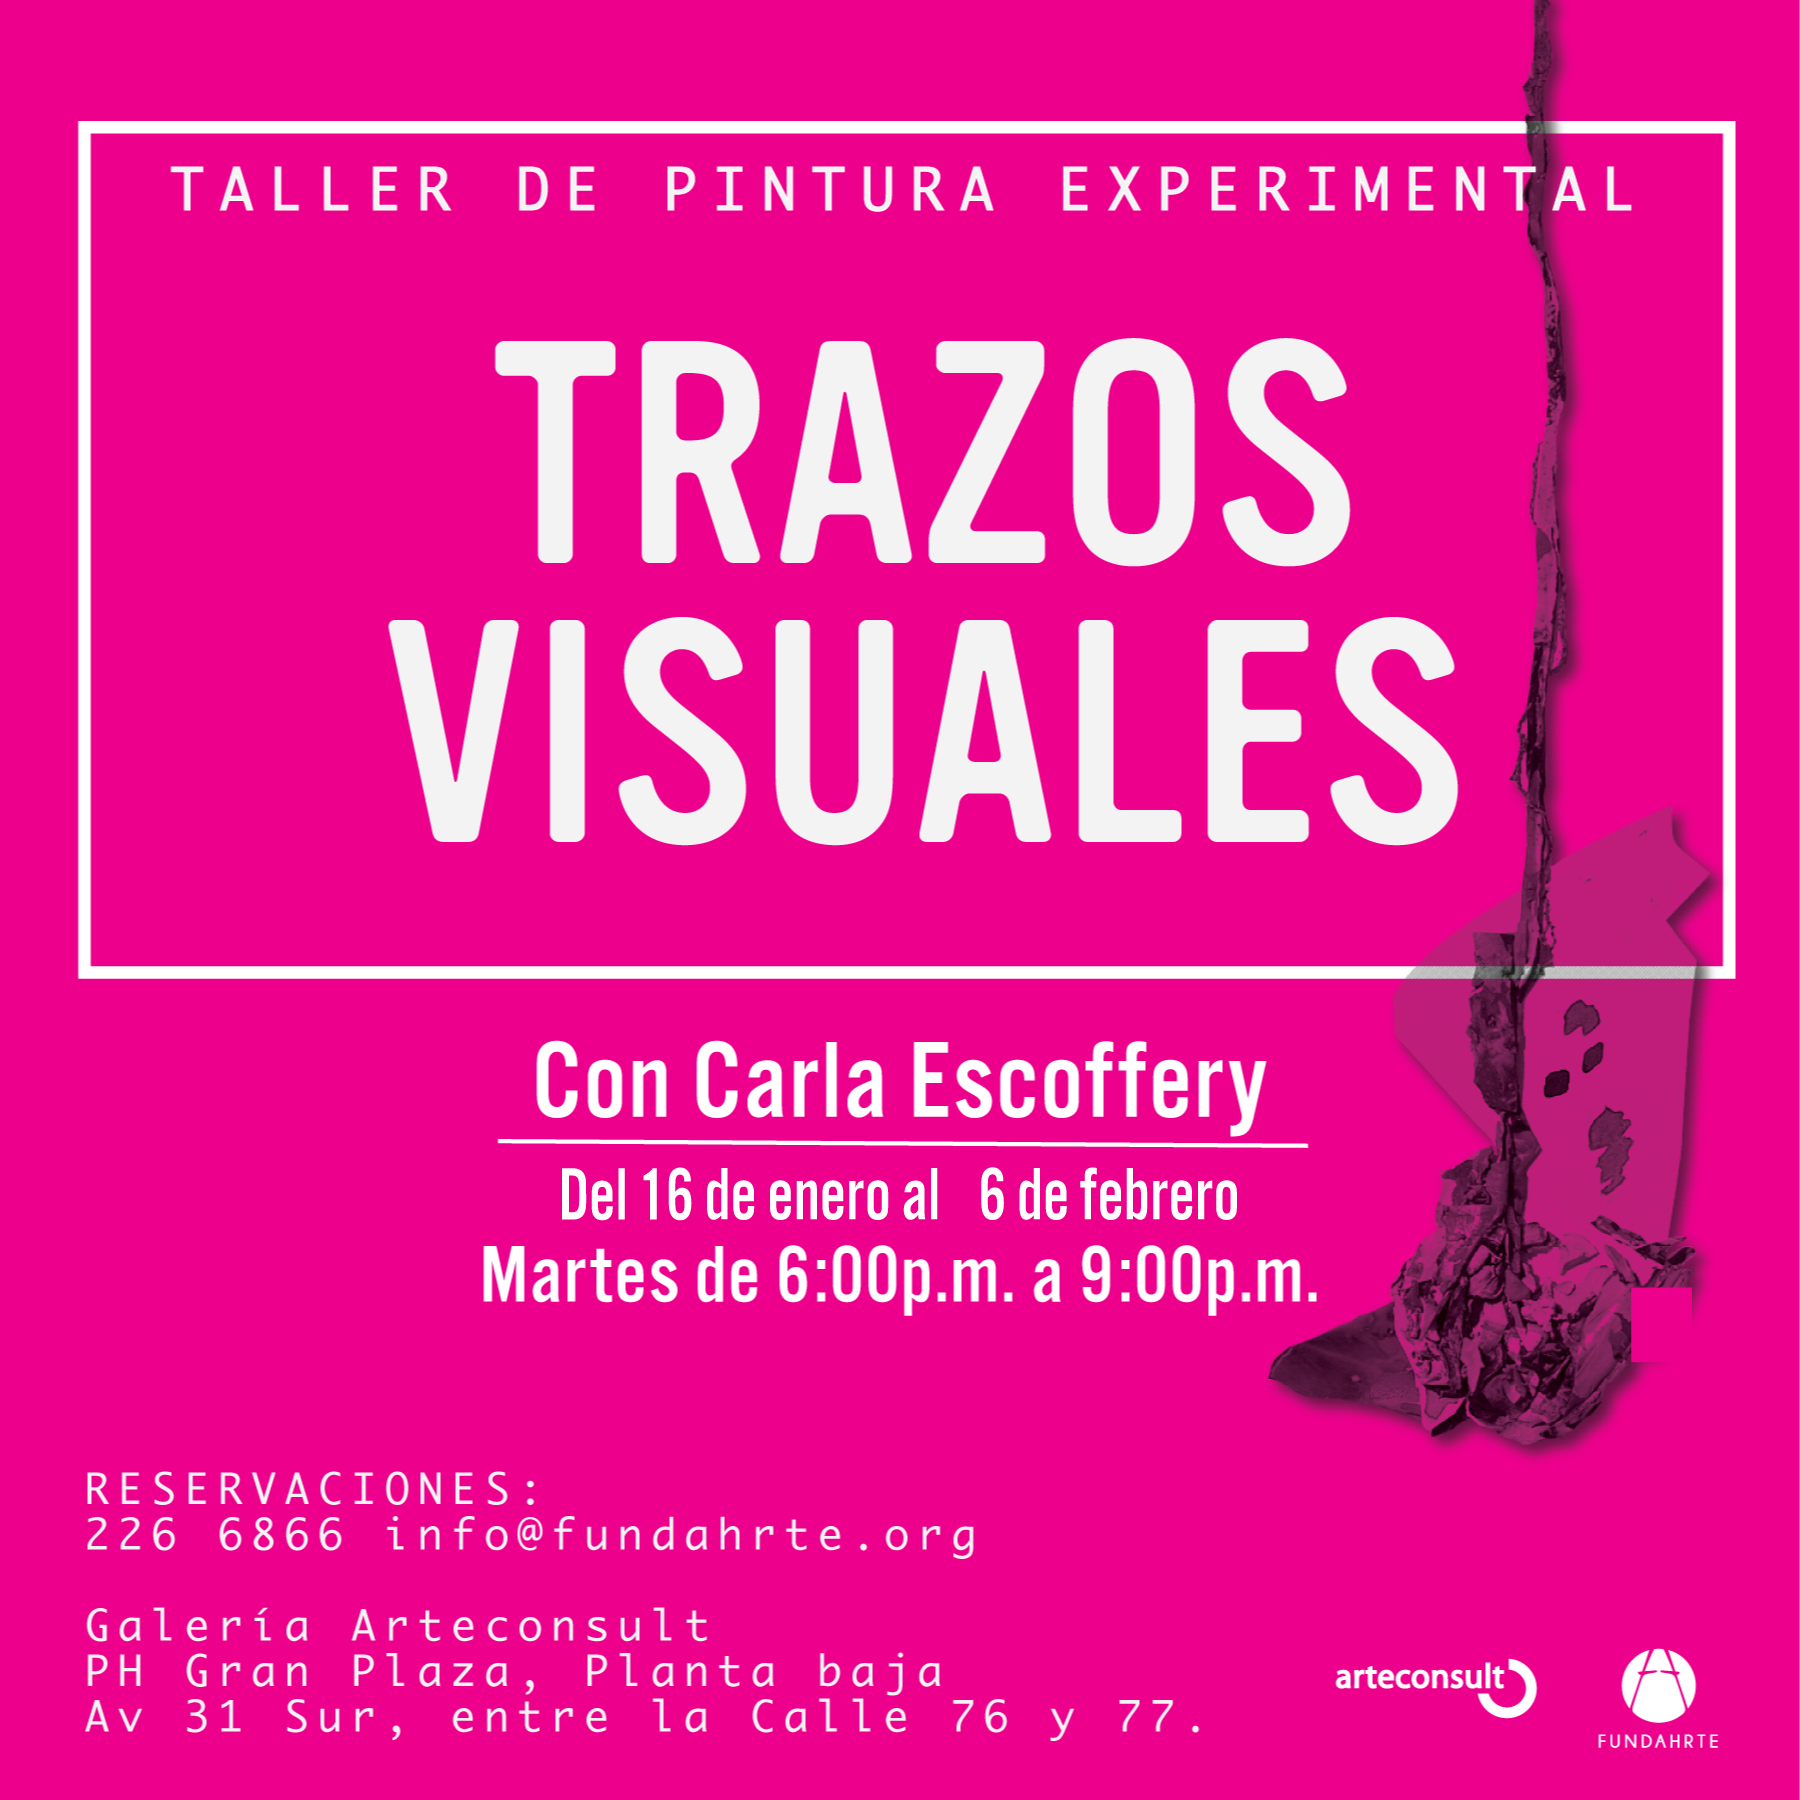 TrazosVisuales-01-01.png